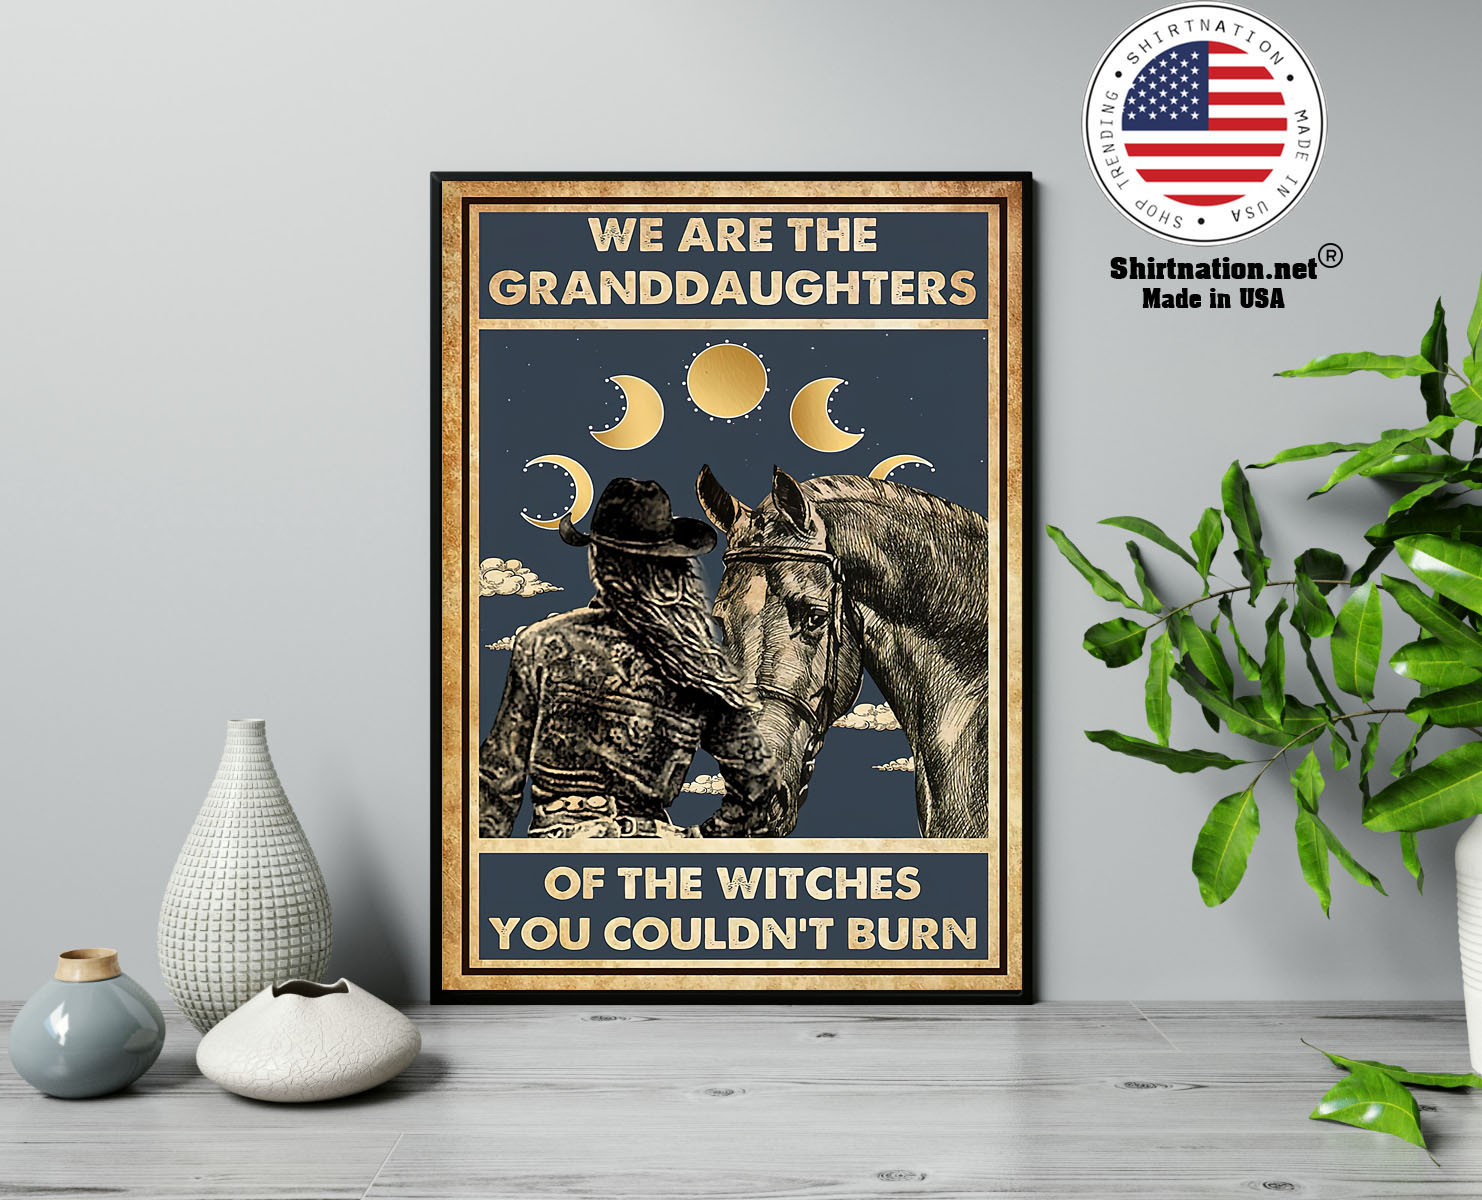 We are the granddaughters of the witches you couldnt burn poster 13